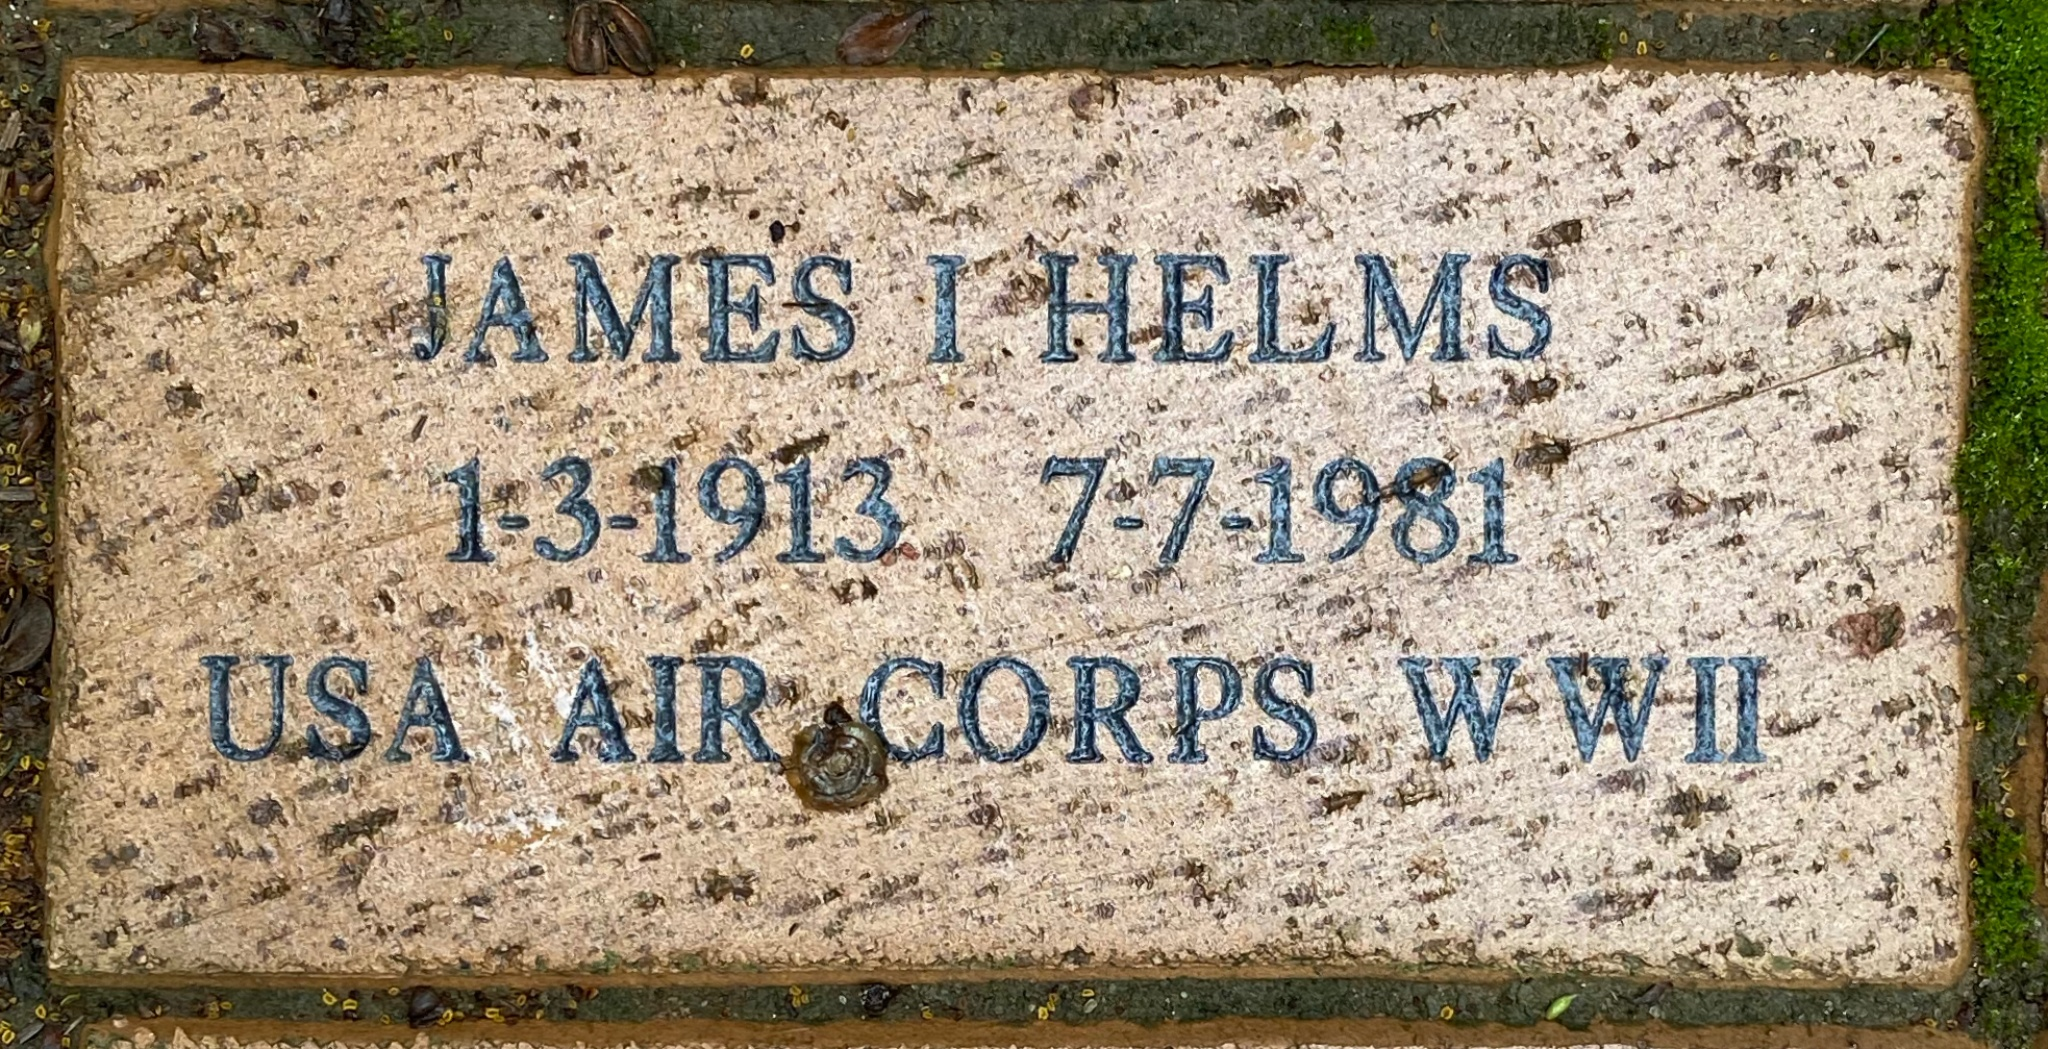 JAMES I HELMS 1-3-1913  7-7-1981 USA AIR CORPS WWII